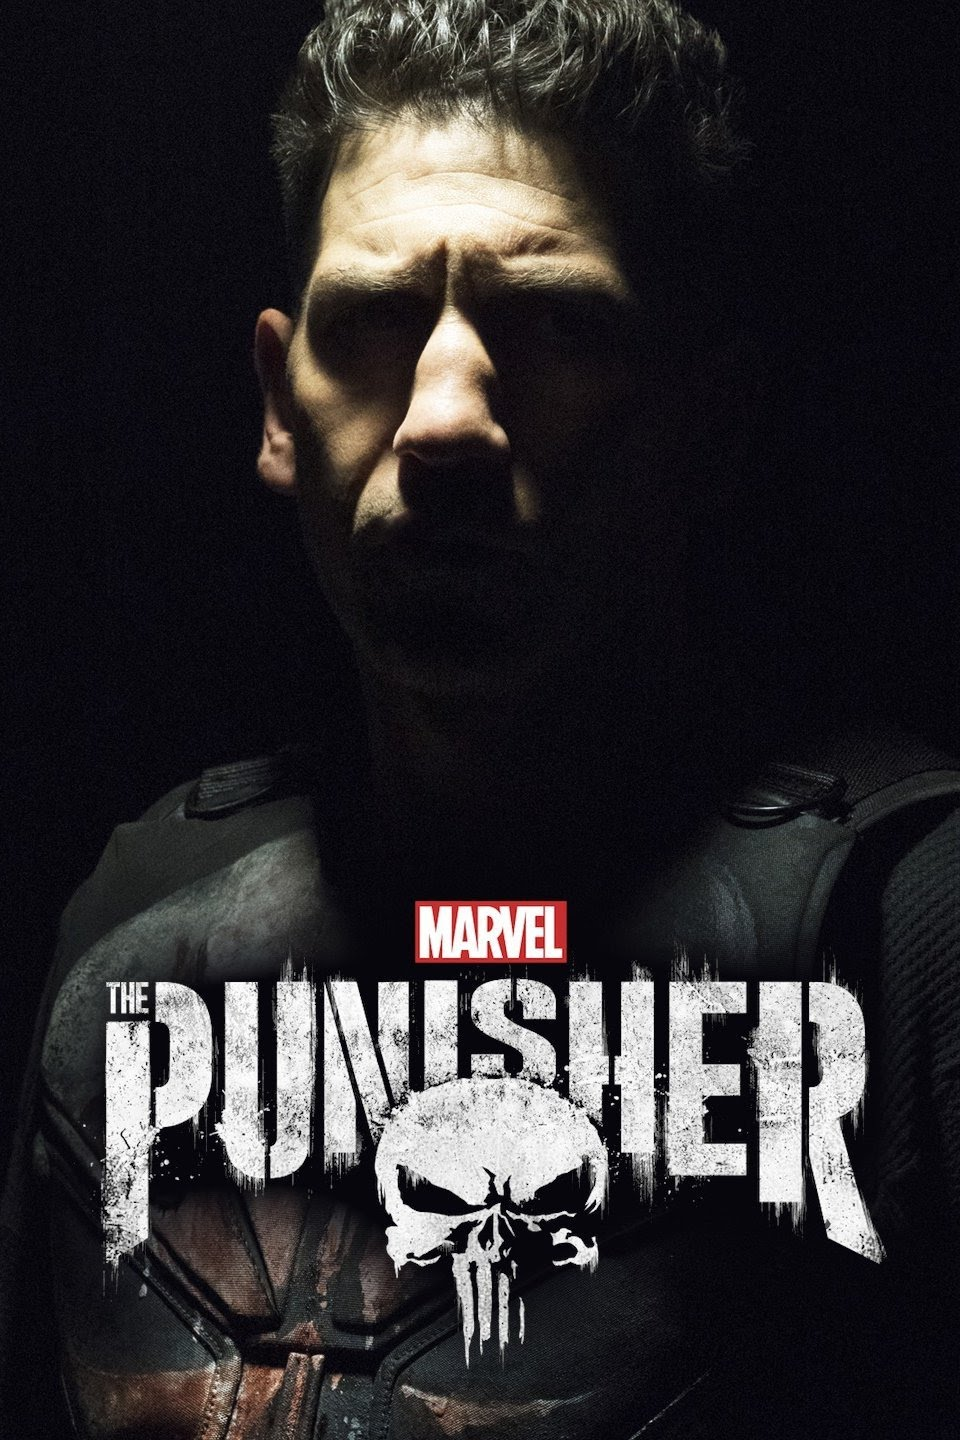 Marvel's The Punisher S01 E07 Cut